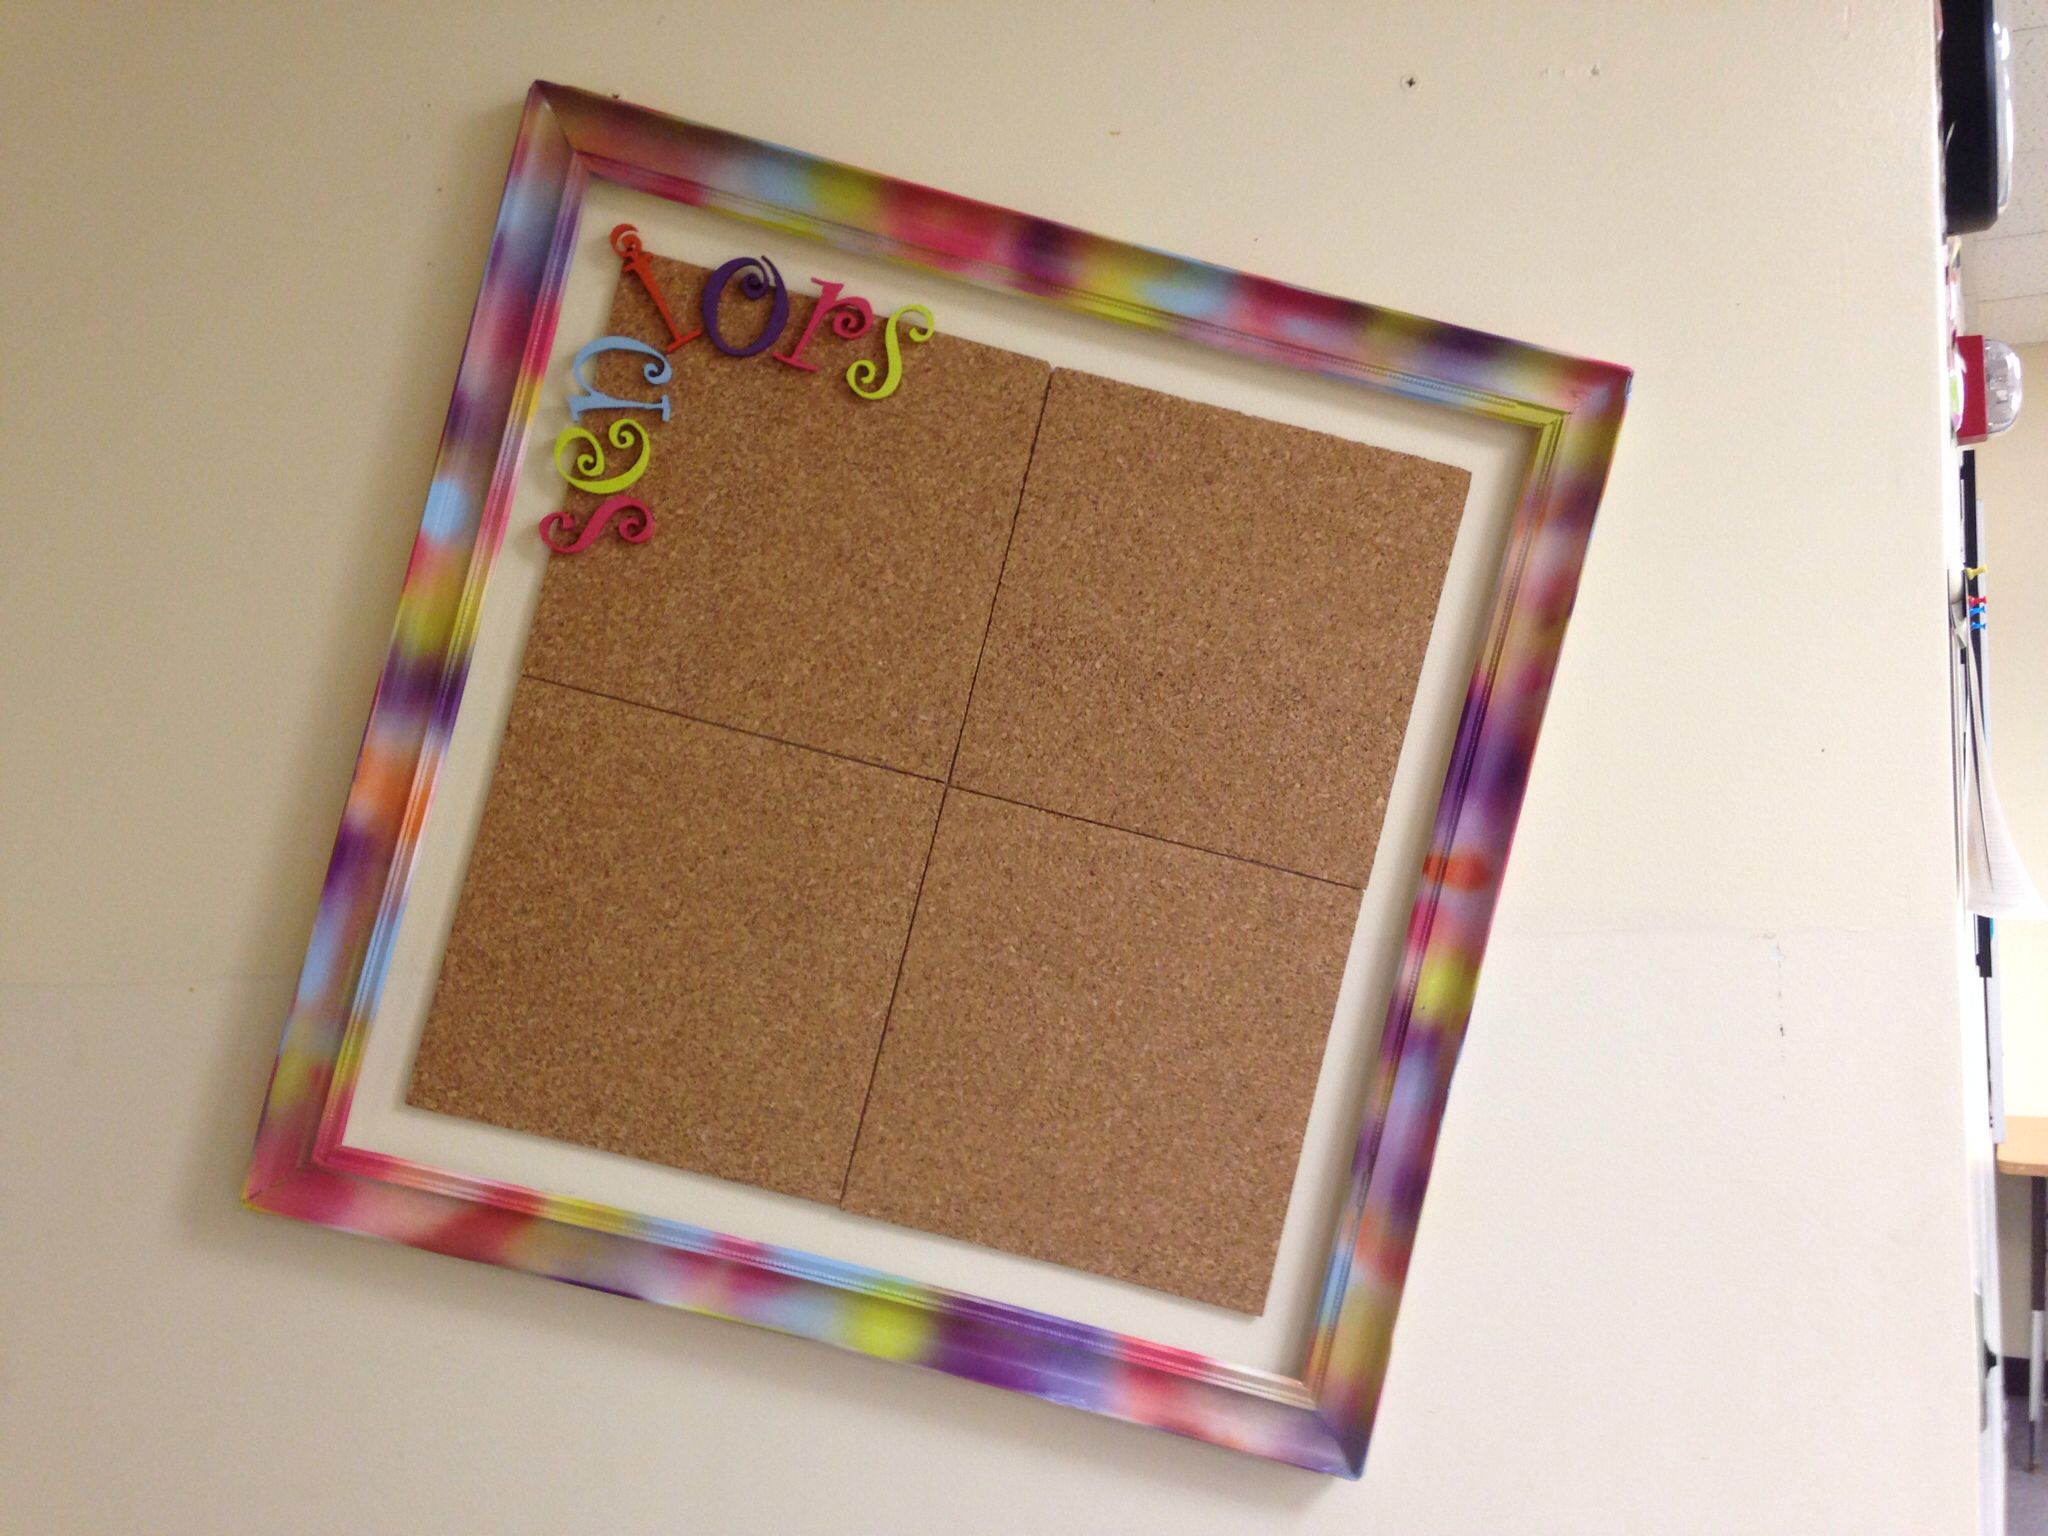 Spray Painted Frame With Cork Board Squares Mounted Inside So